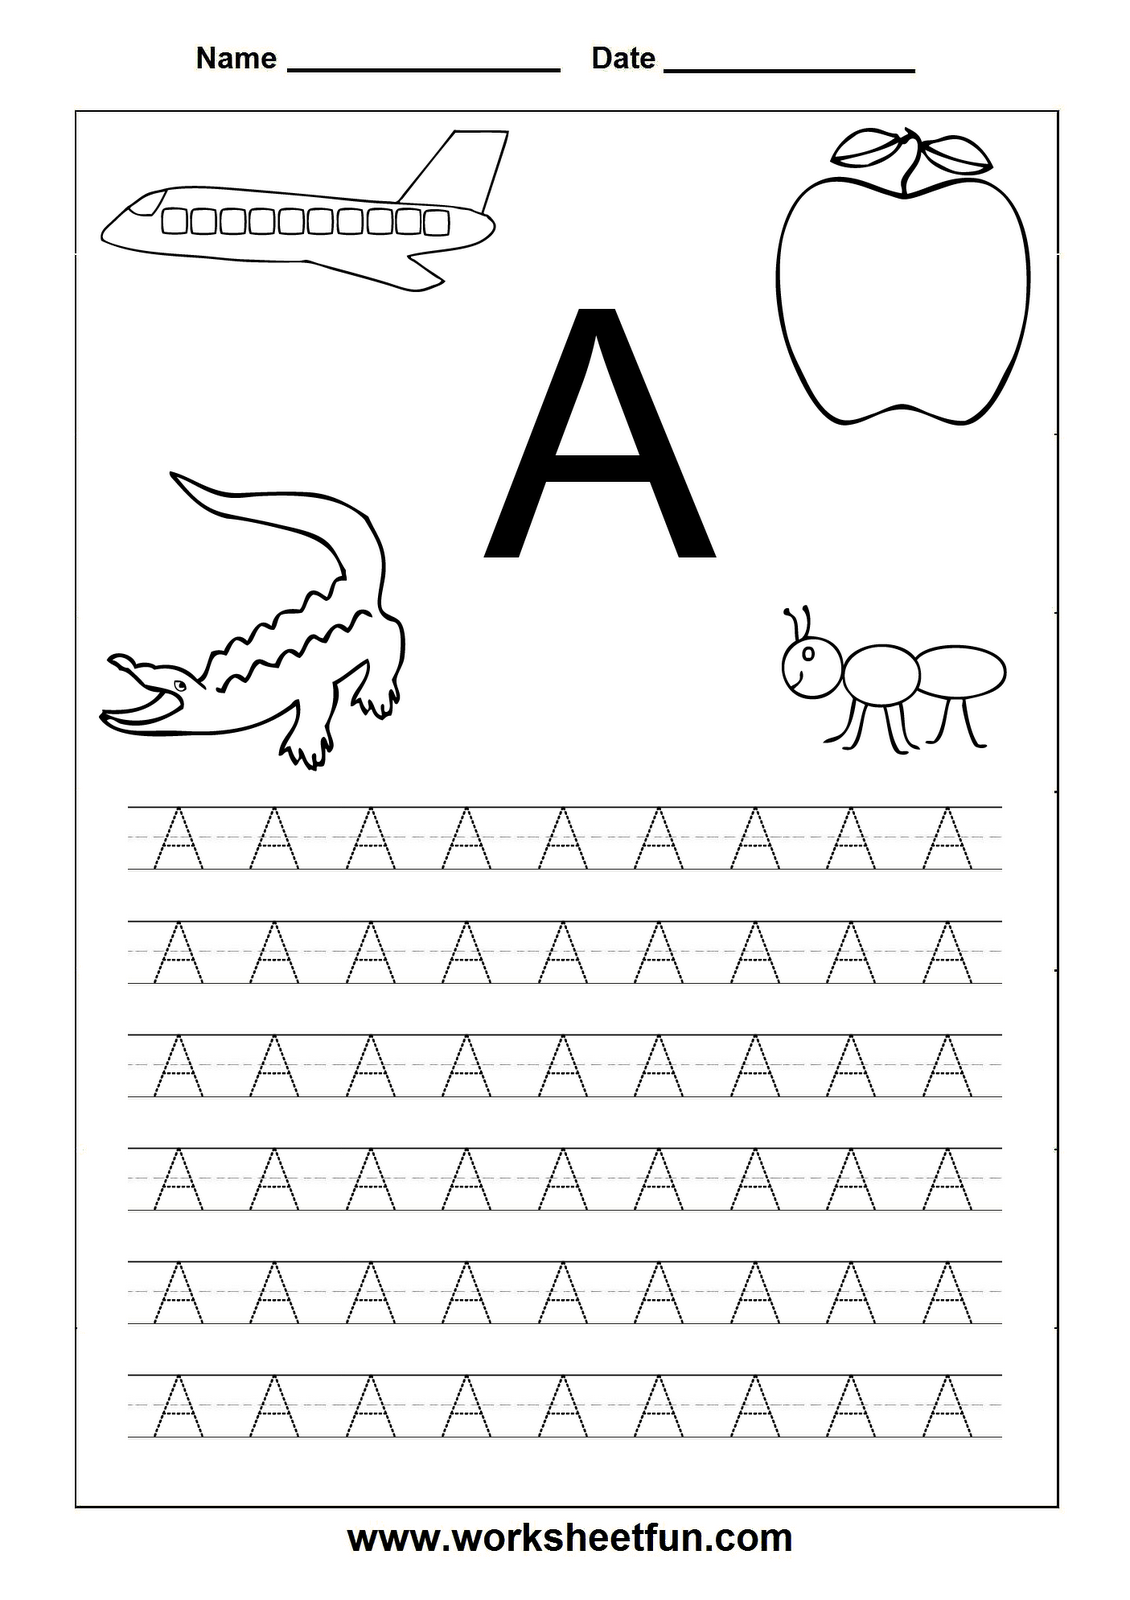 Free Printable Tracing letter S worksheets for preschool – Letter Worksheets for Kindergarten